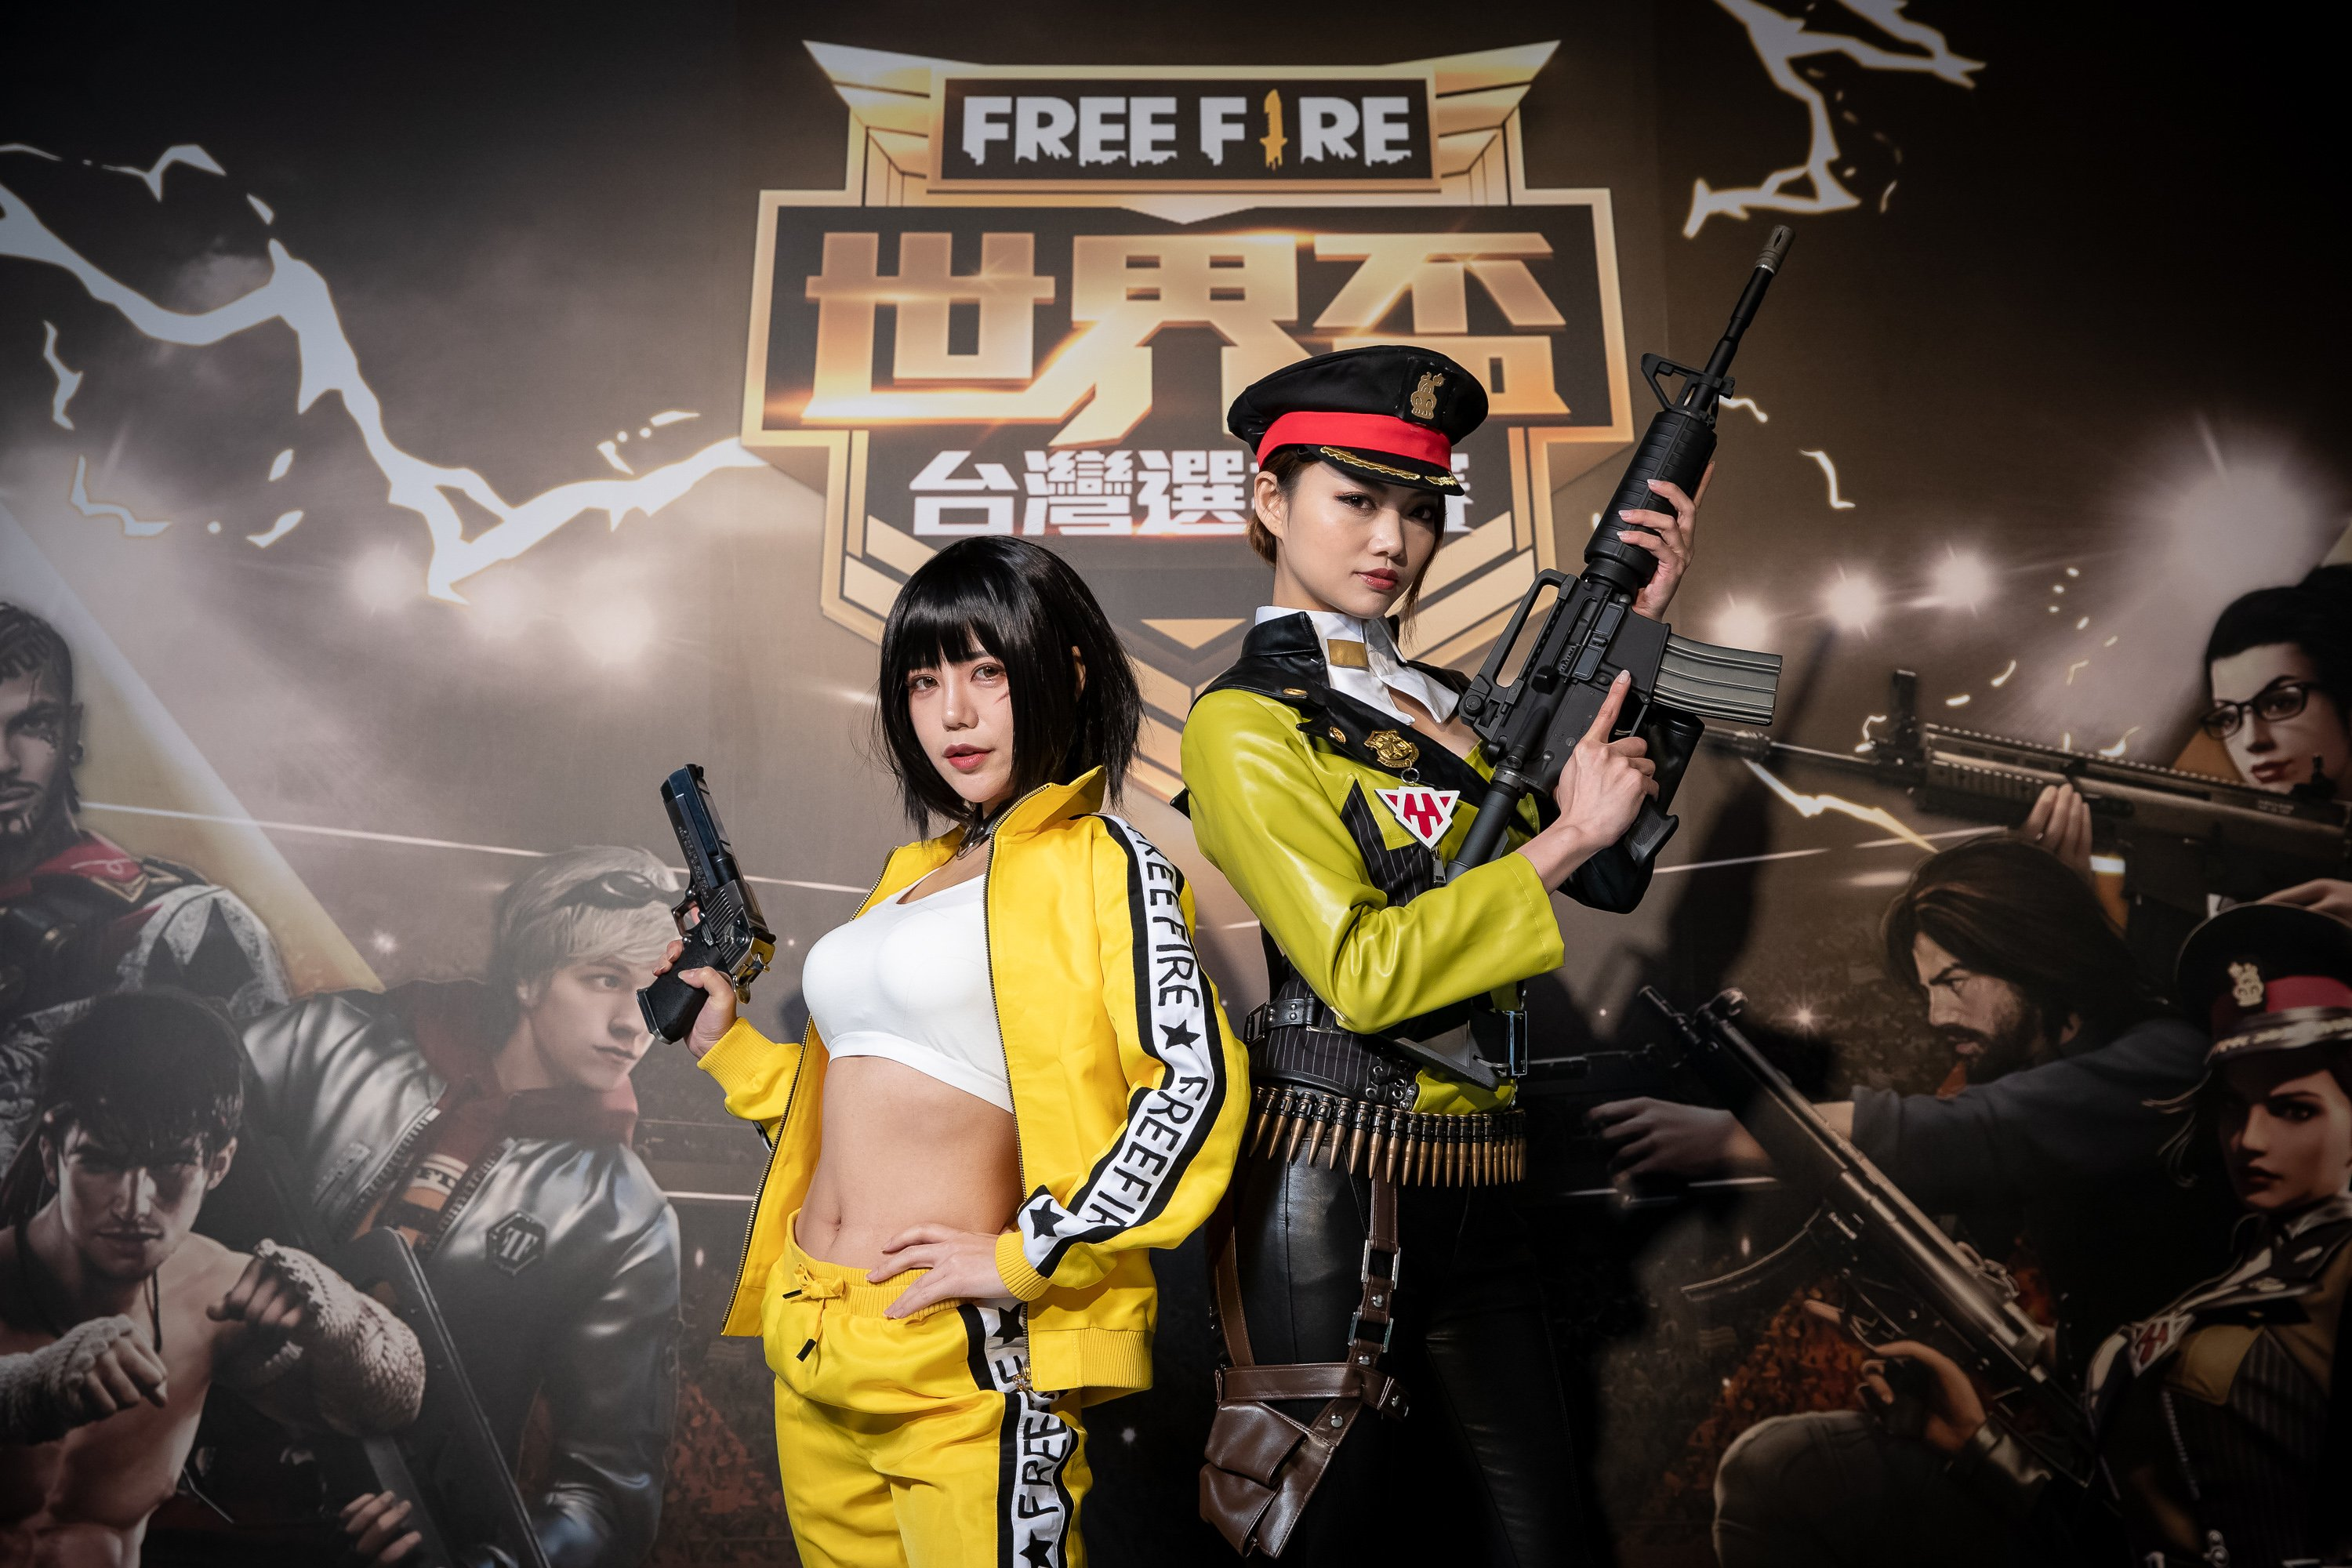 Garena Free Fire Hd Wallpapers Wallpaper Cave